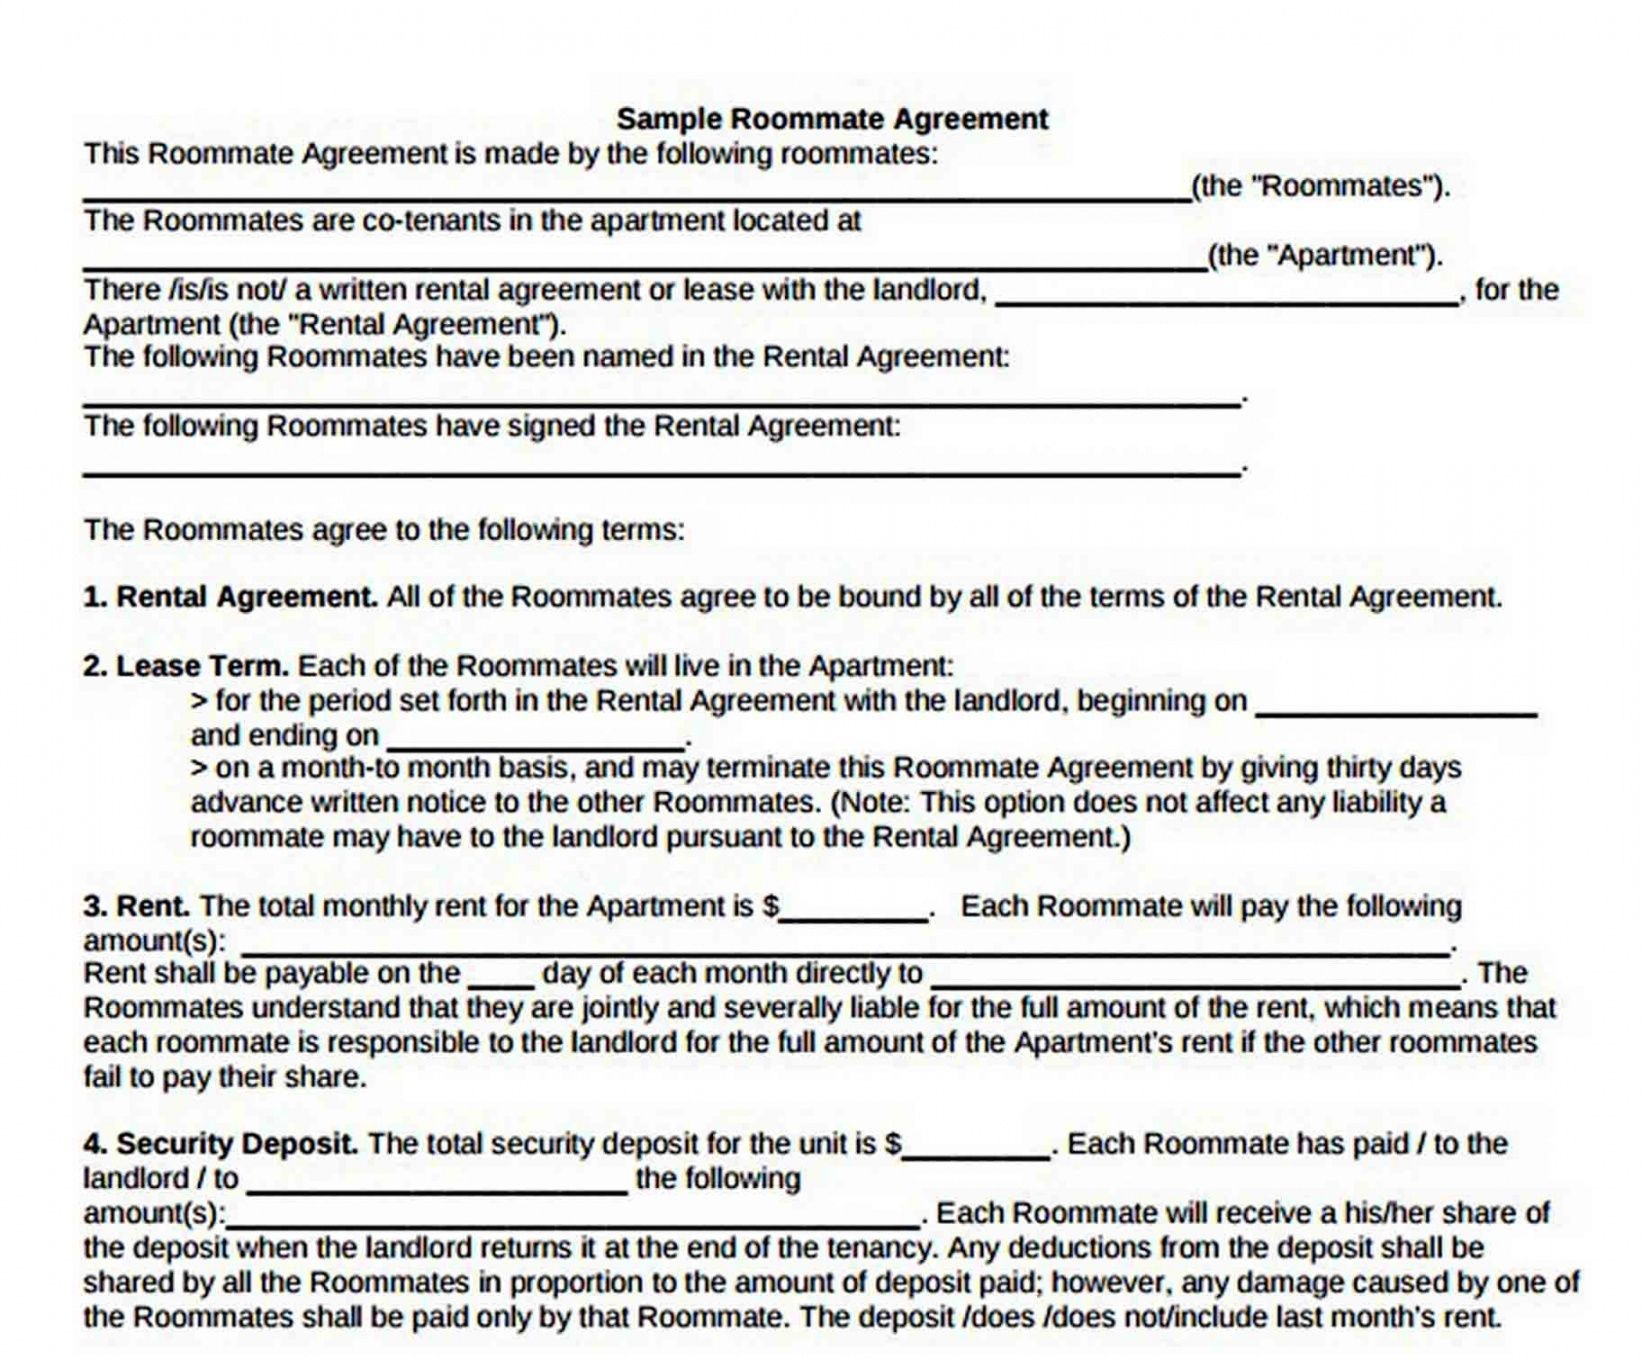 House Rules For Roommates Template In 2021 Rental Agreement Templates House Rules Being A Landlord House rules for roommates template